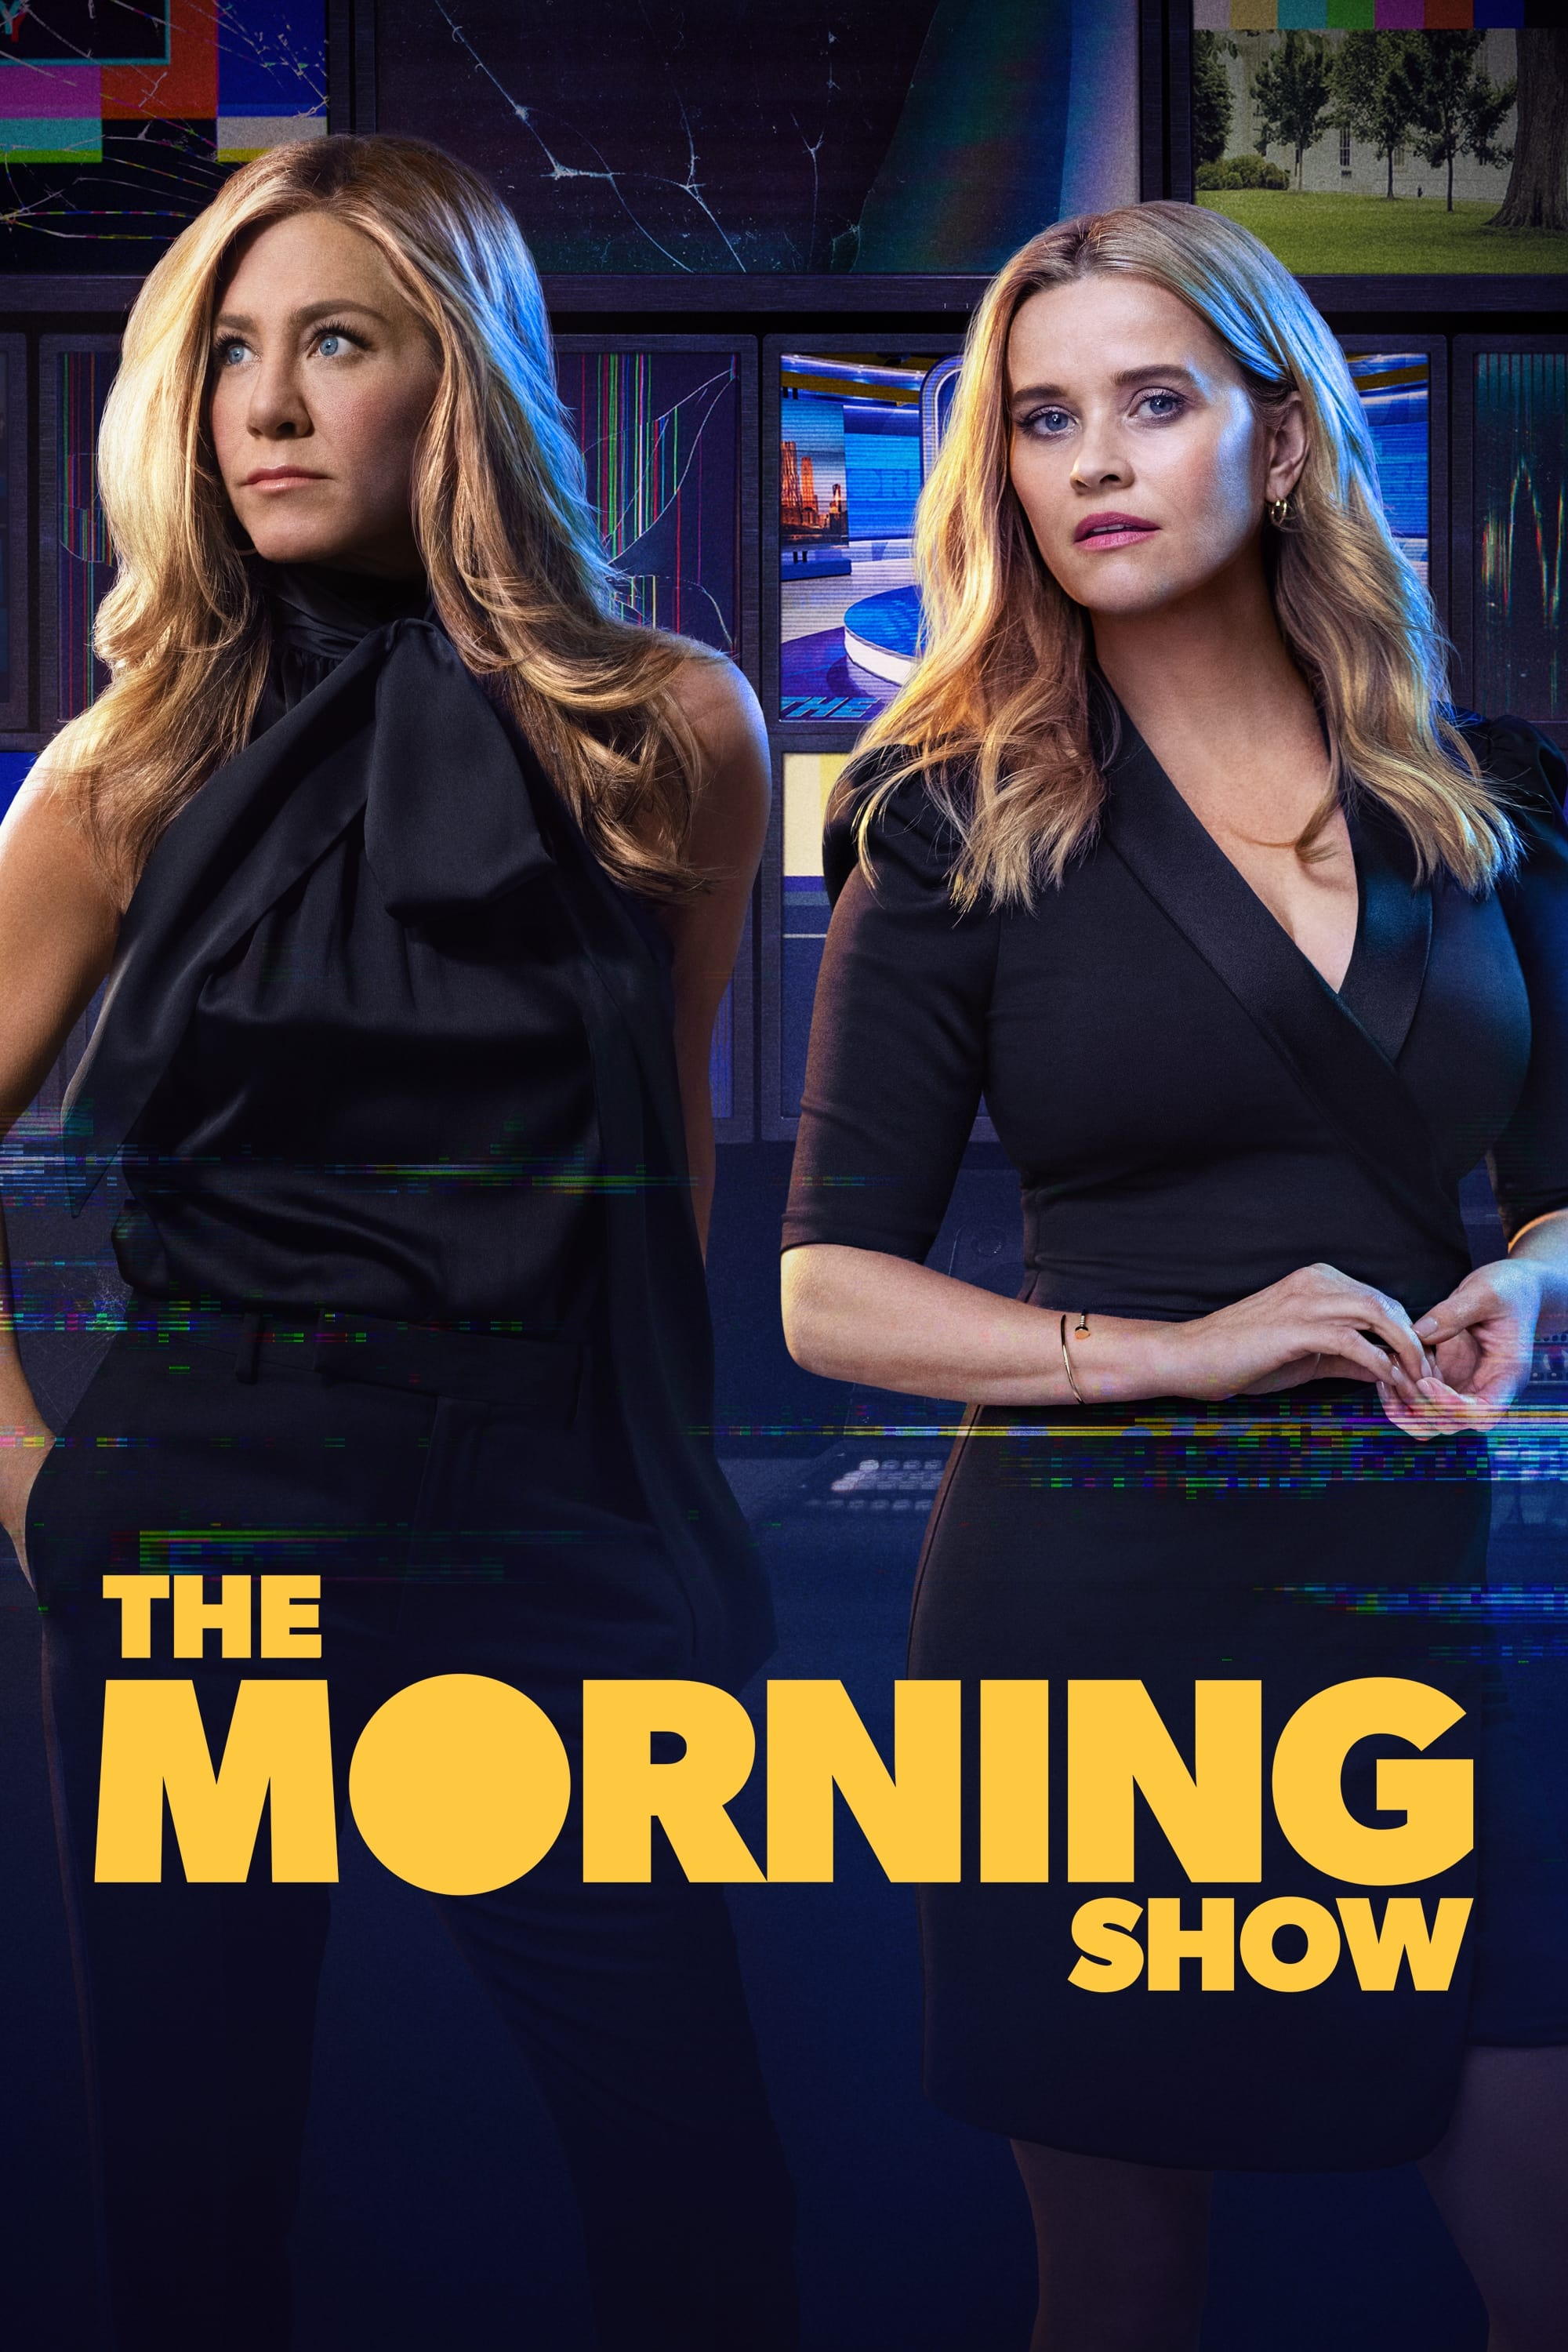 The Morning Show rating